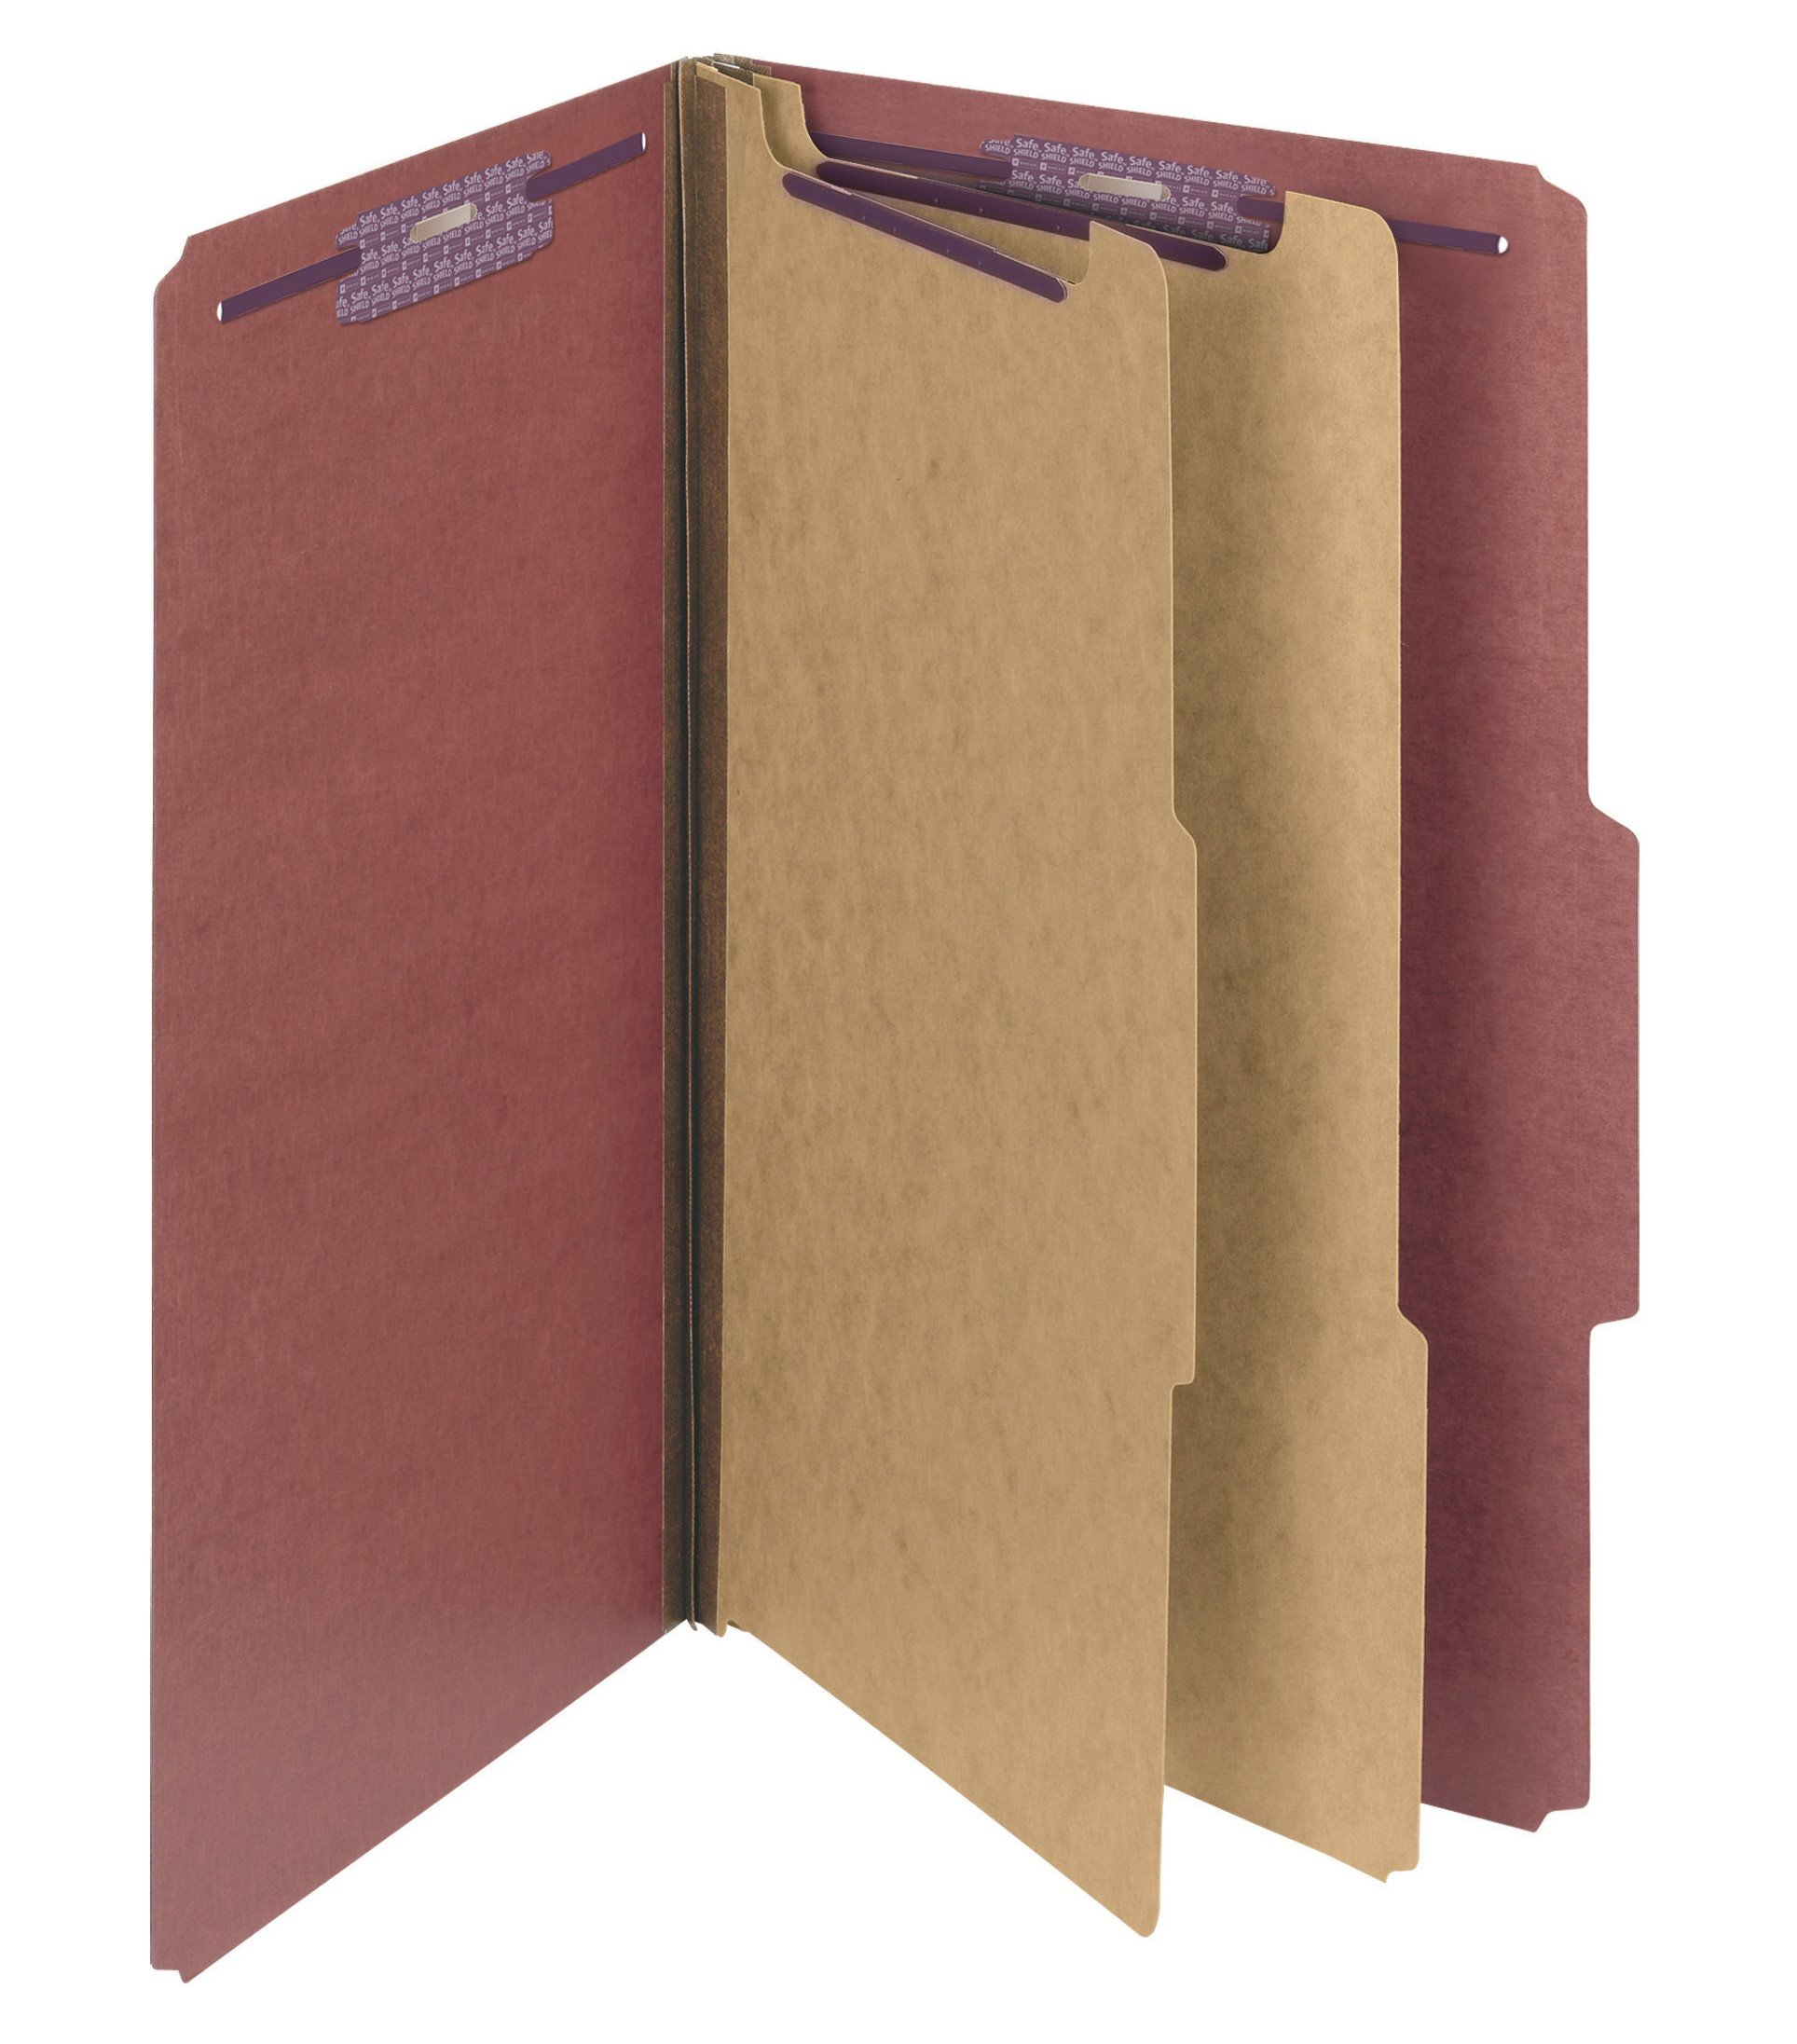 Smead Pressboard Classification File Folder with SafeSHIELD Fasteners, 2 Dividers, 2'' Expansion, Legal Size, Red, 10 per Box (19075)